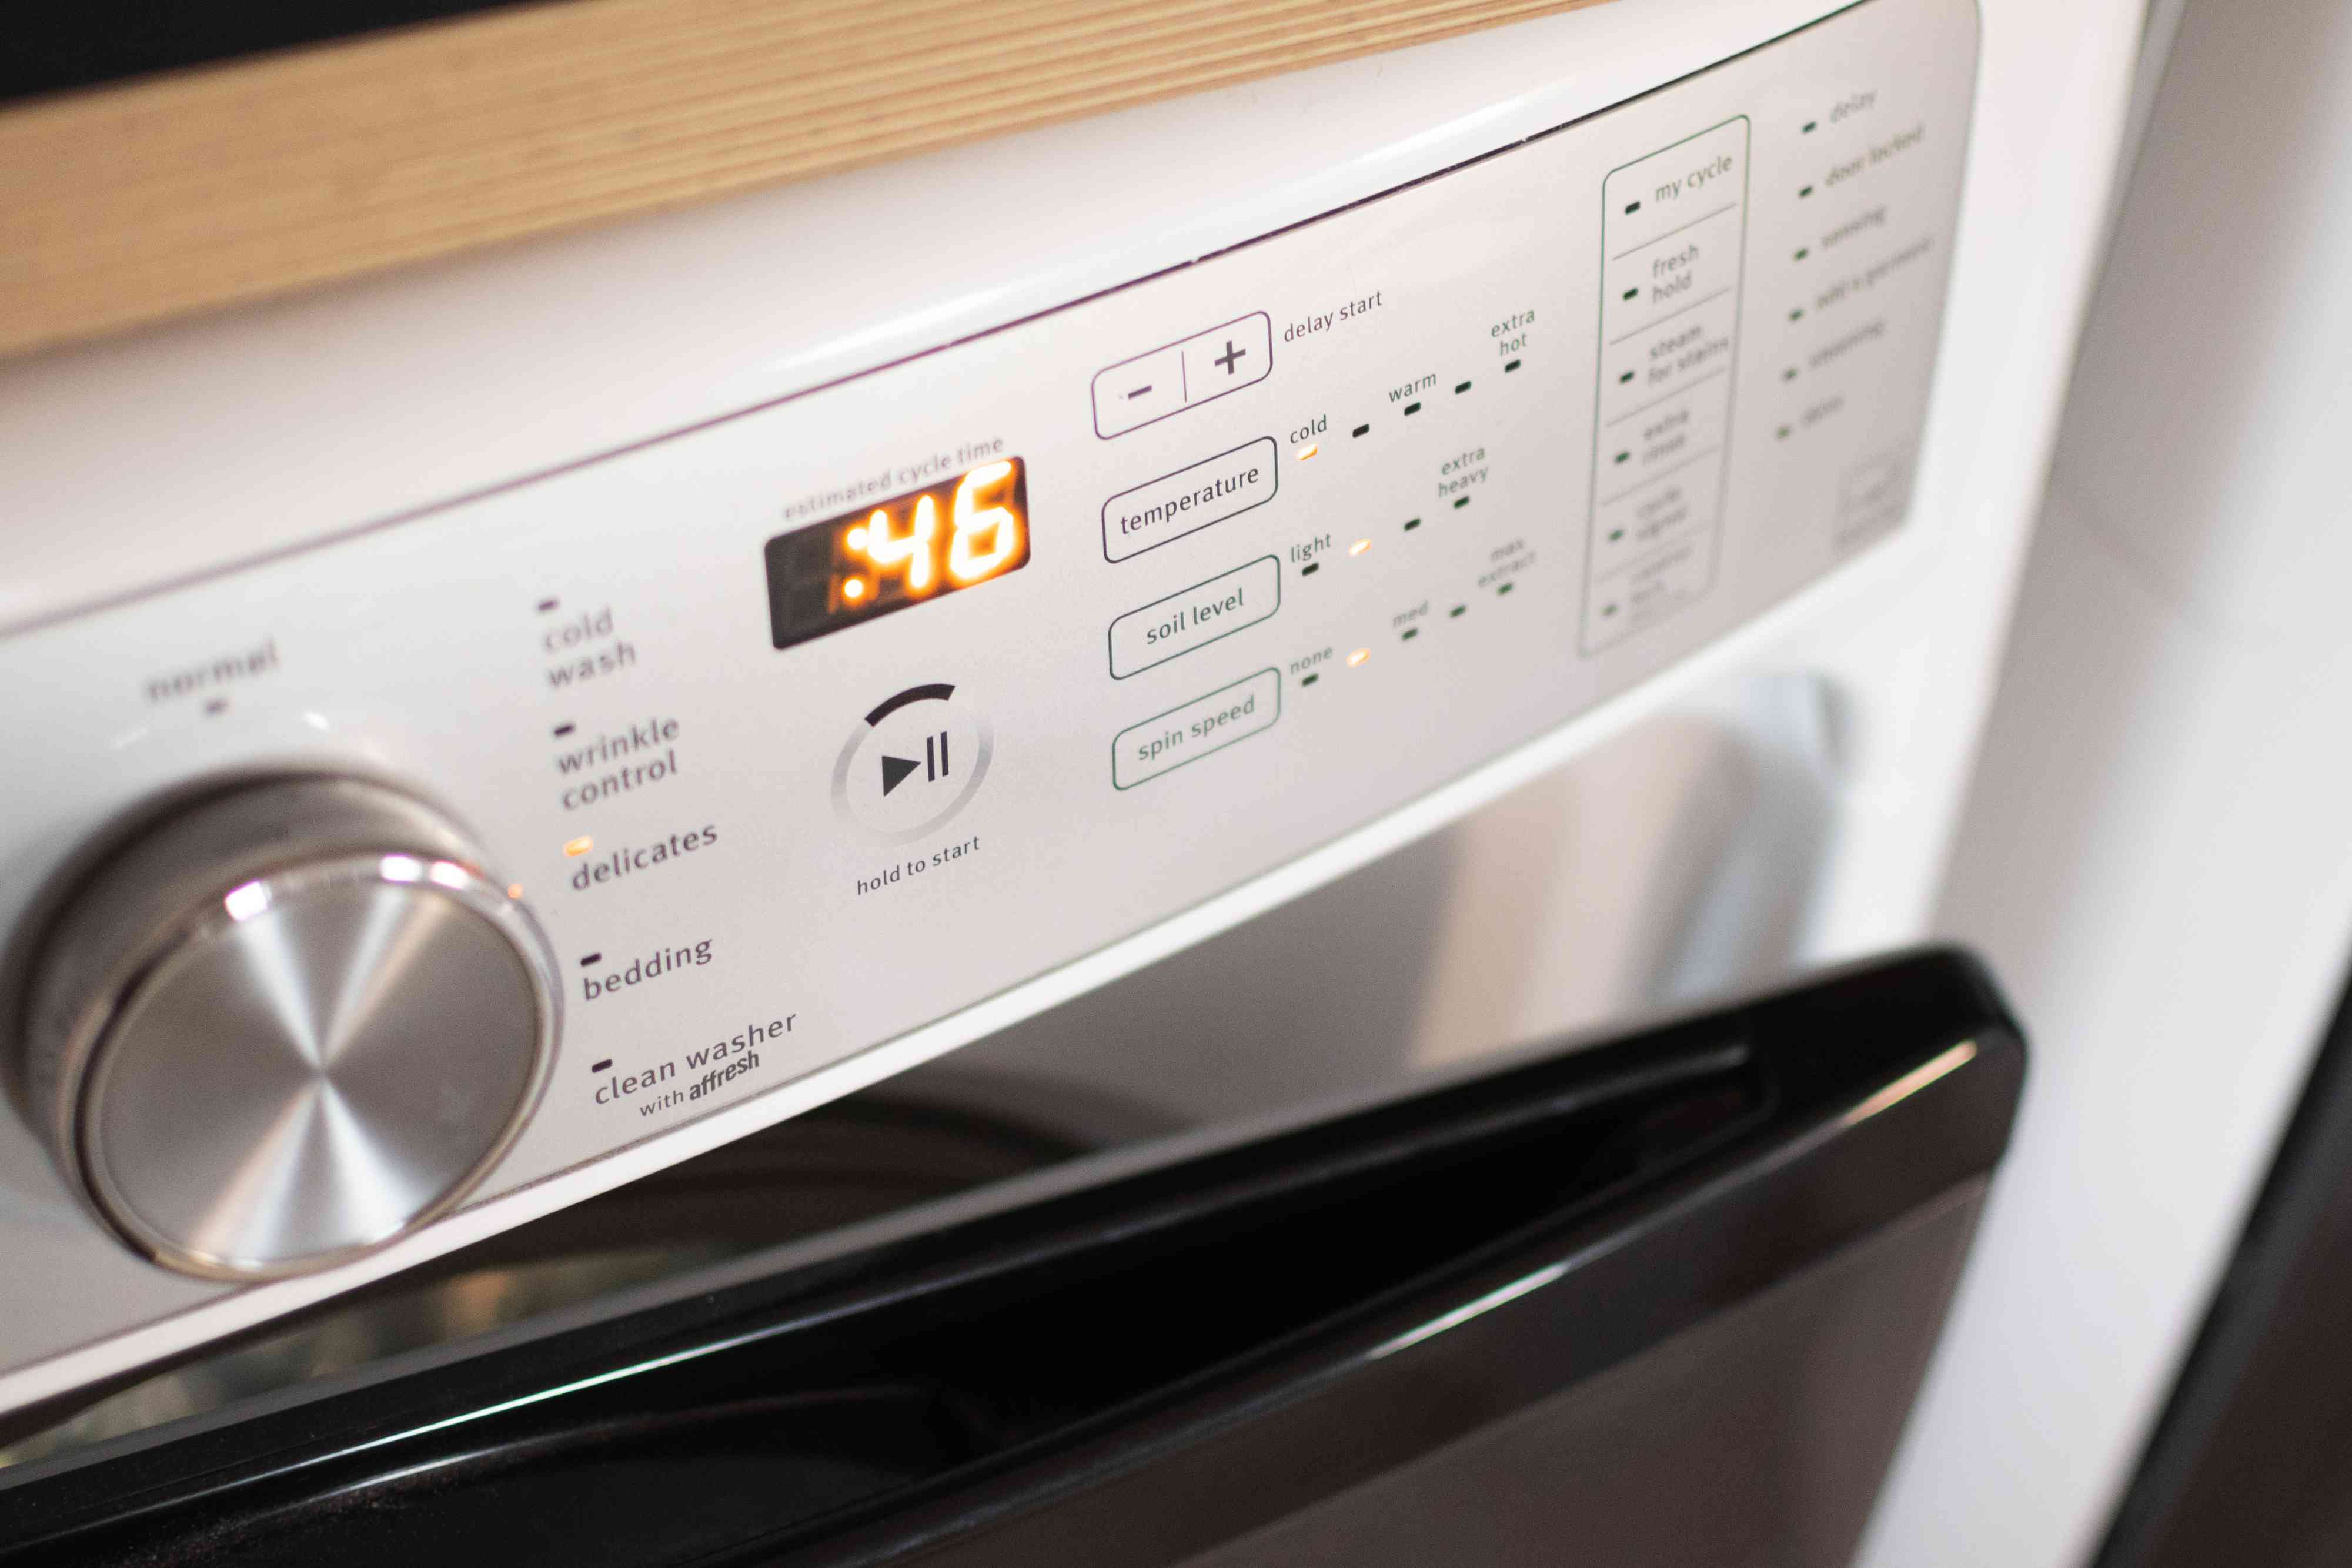 Washing machine set to gentle cycle for cleaning wool coat